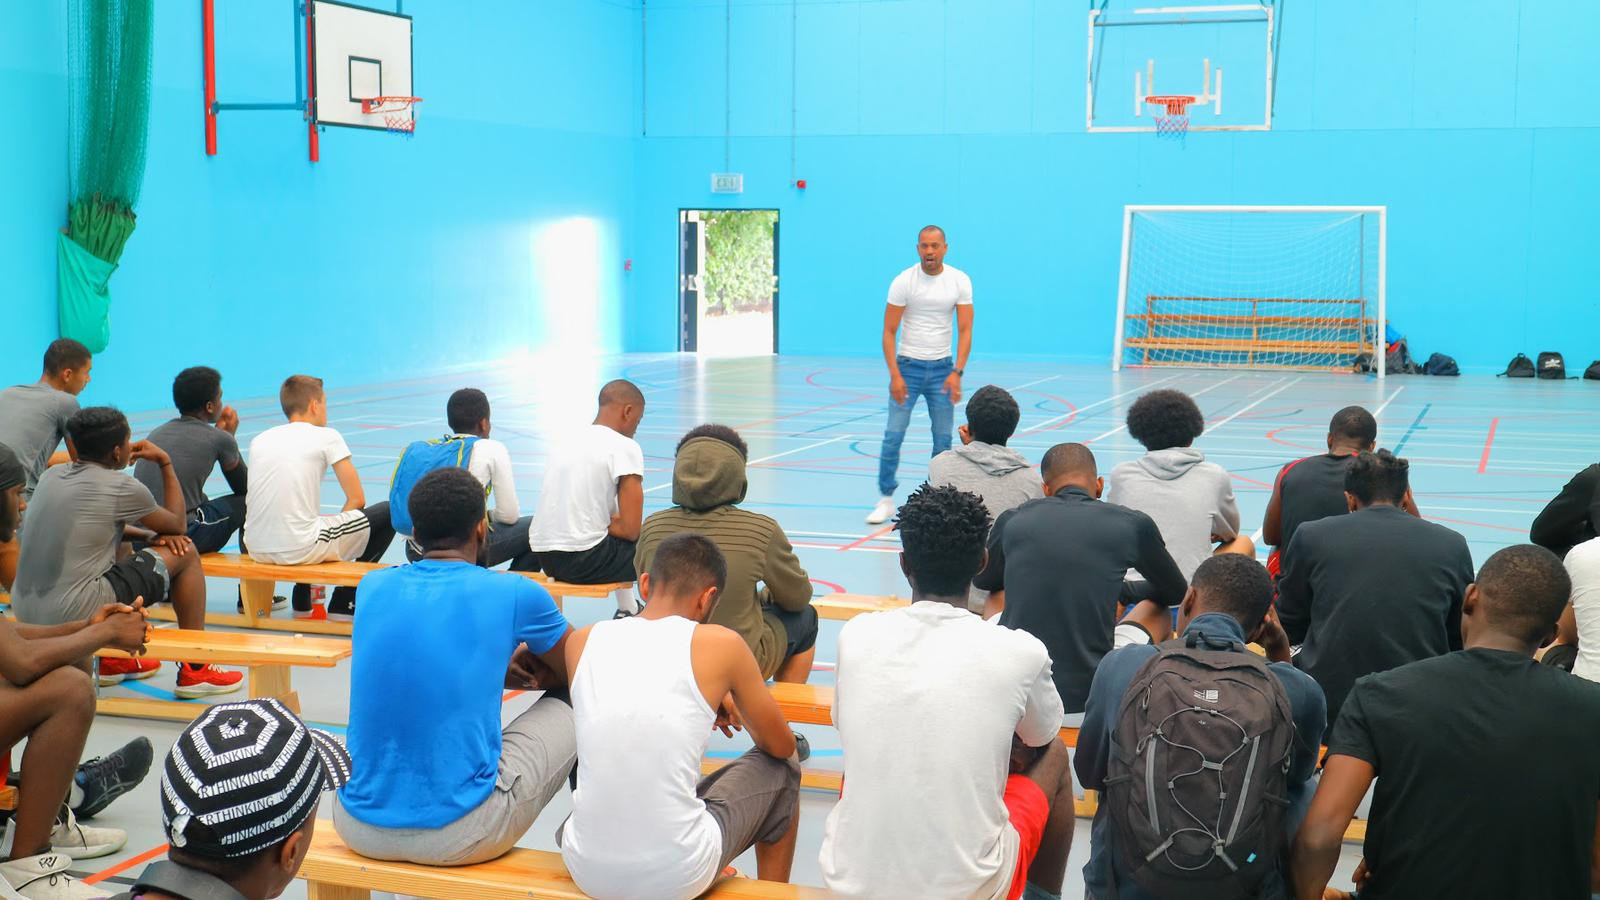 Football & Basketball tournament, College of North East London, Enfield